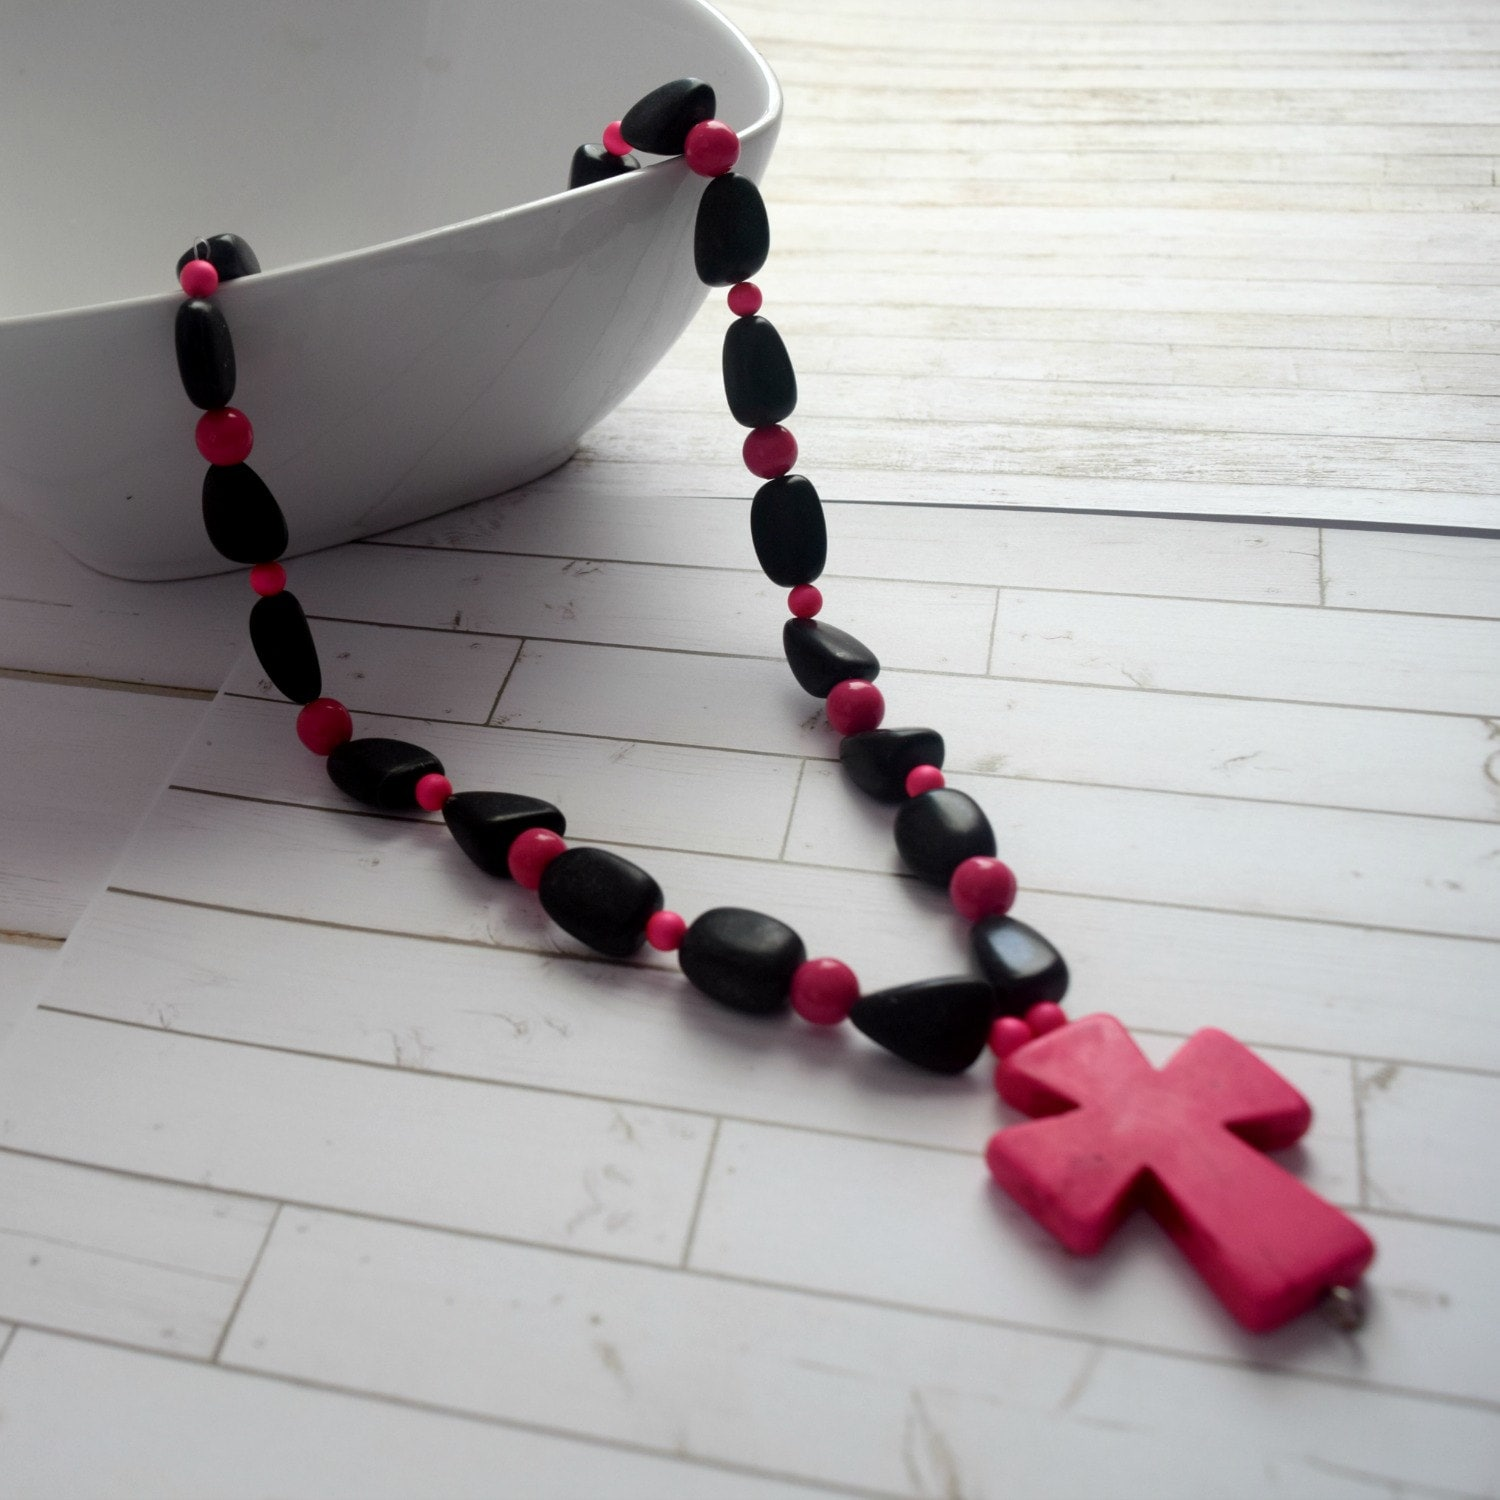 Necklace Cross Gift | Pink Necklace For Her, Christian Gift Necklace, Faith Jewelry, Cross Necklace, Bead Necklace, Best Friend Necklace